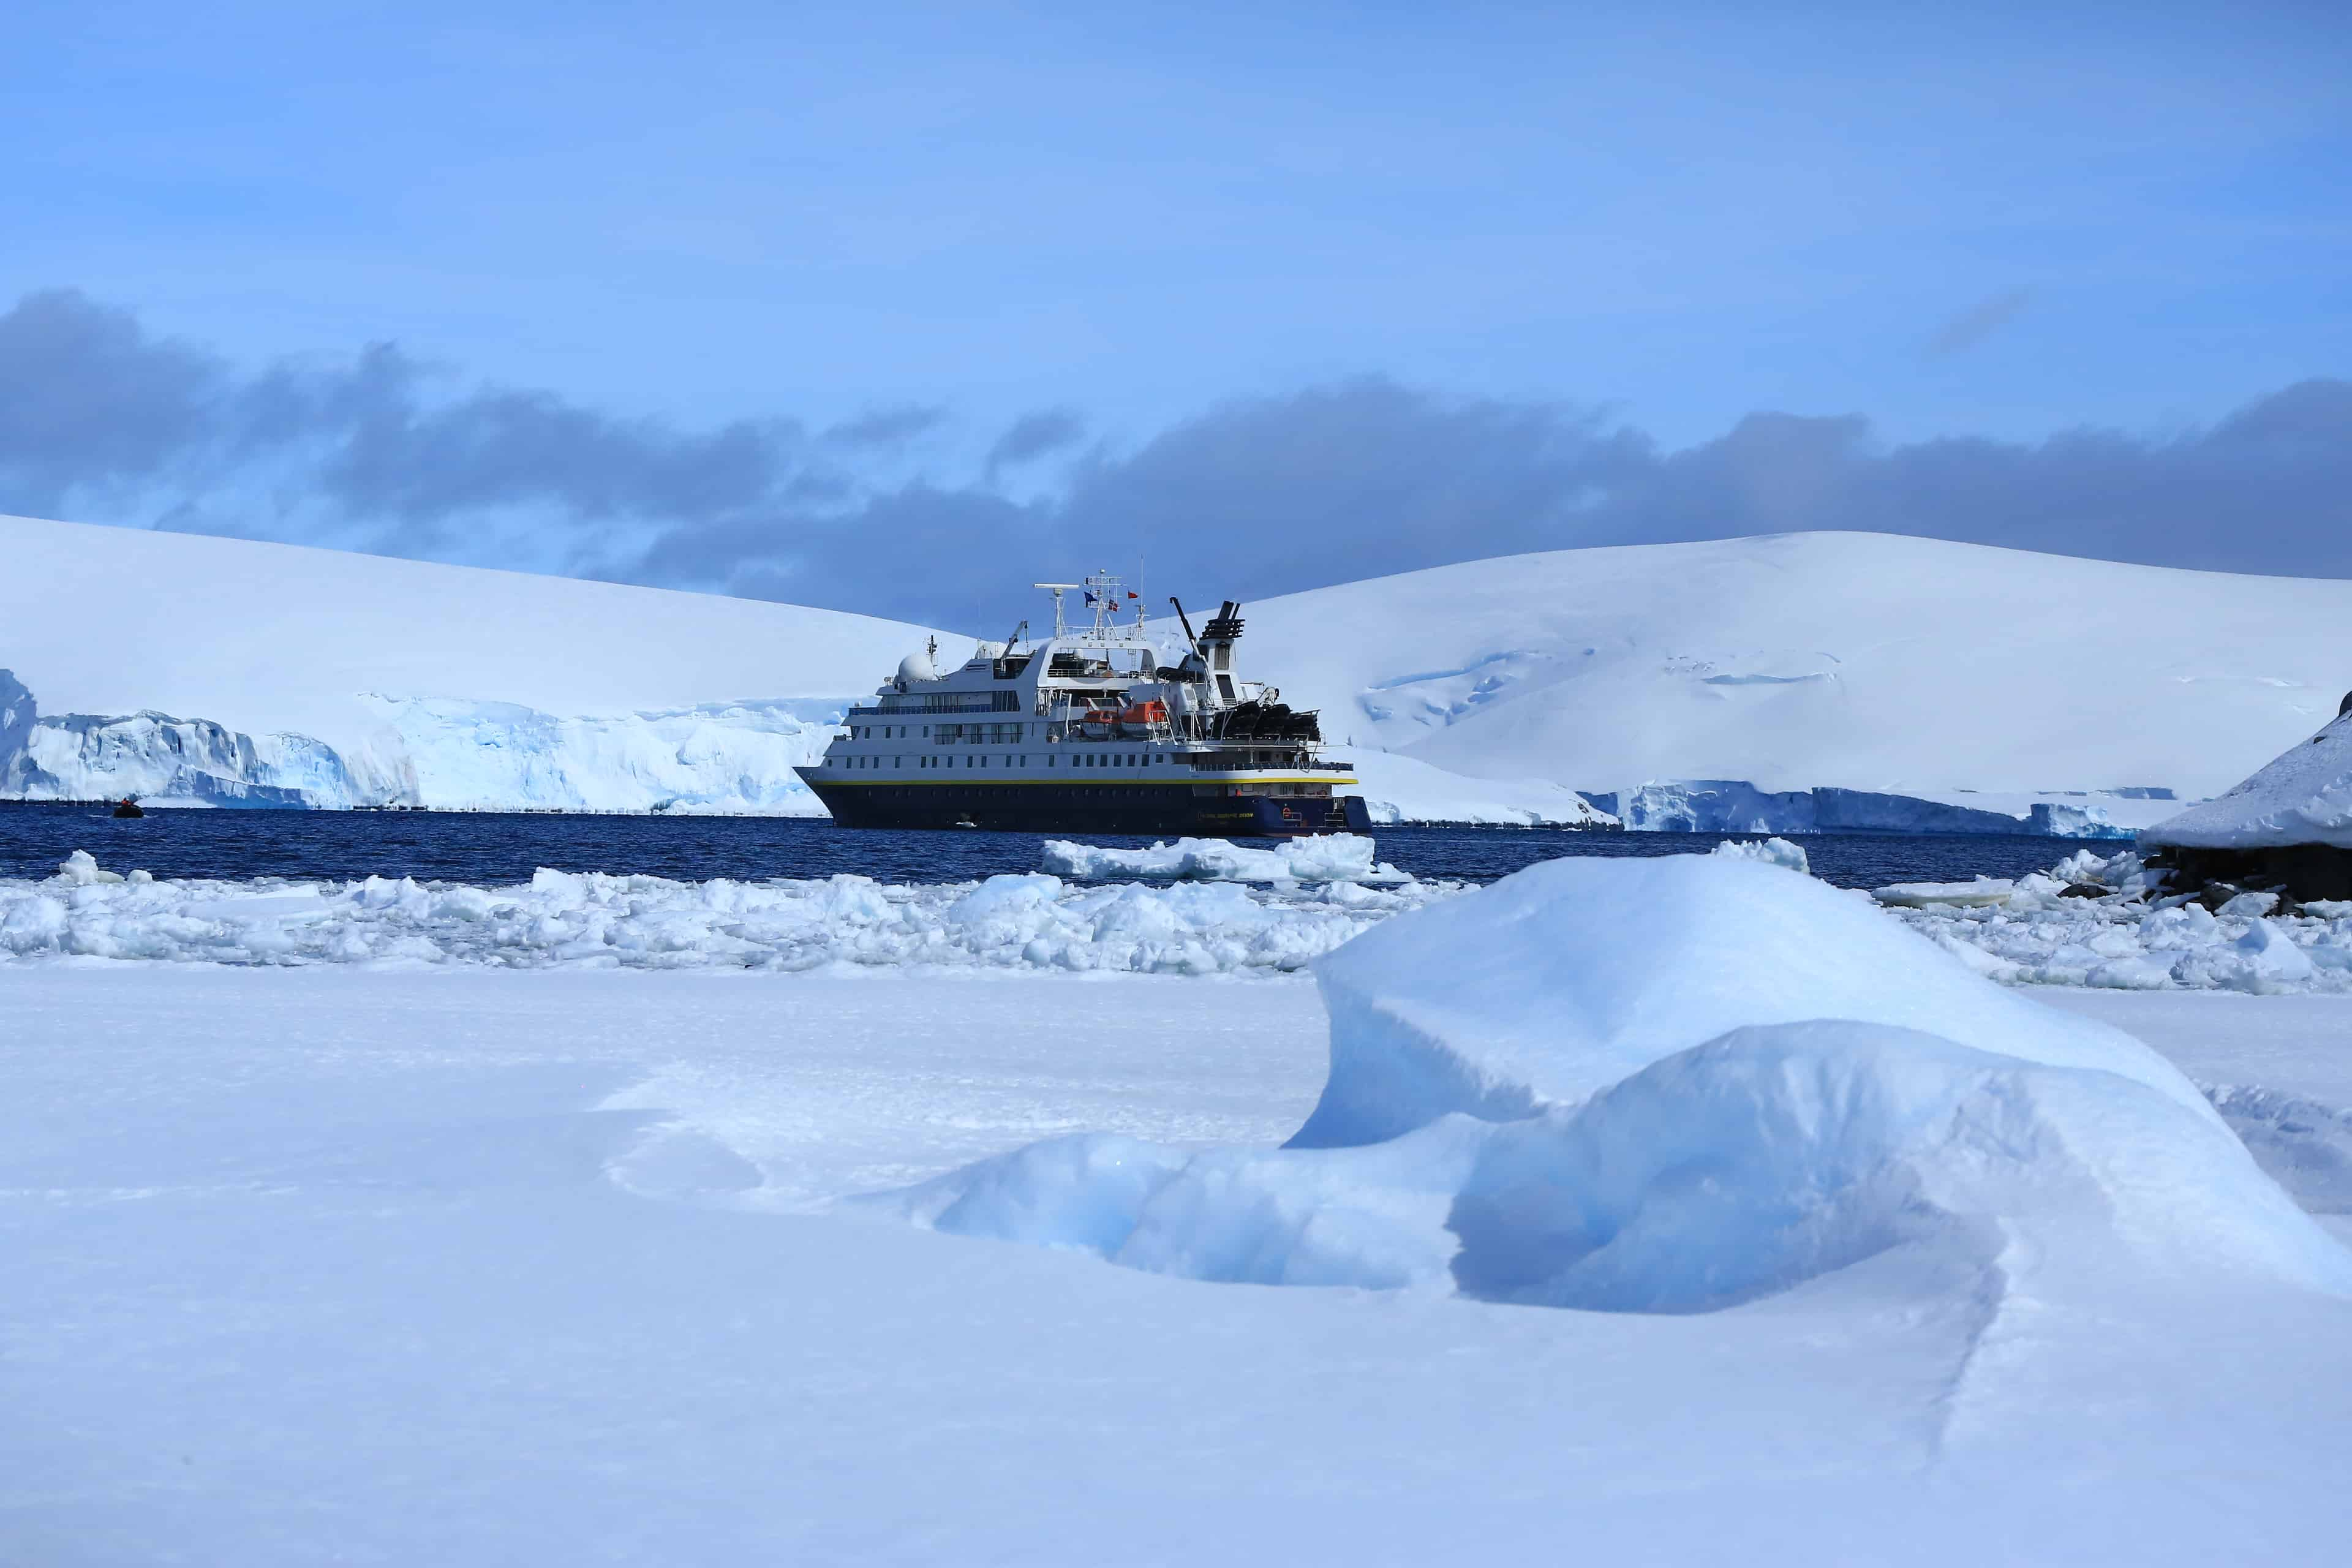 Lindblad's National Geographic Orion